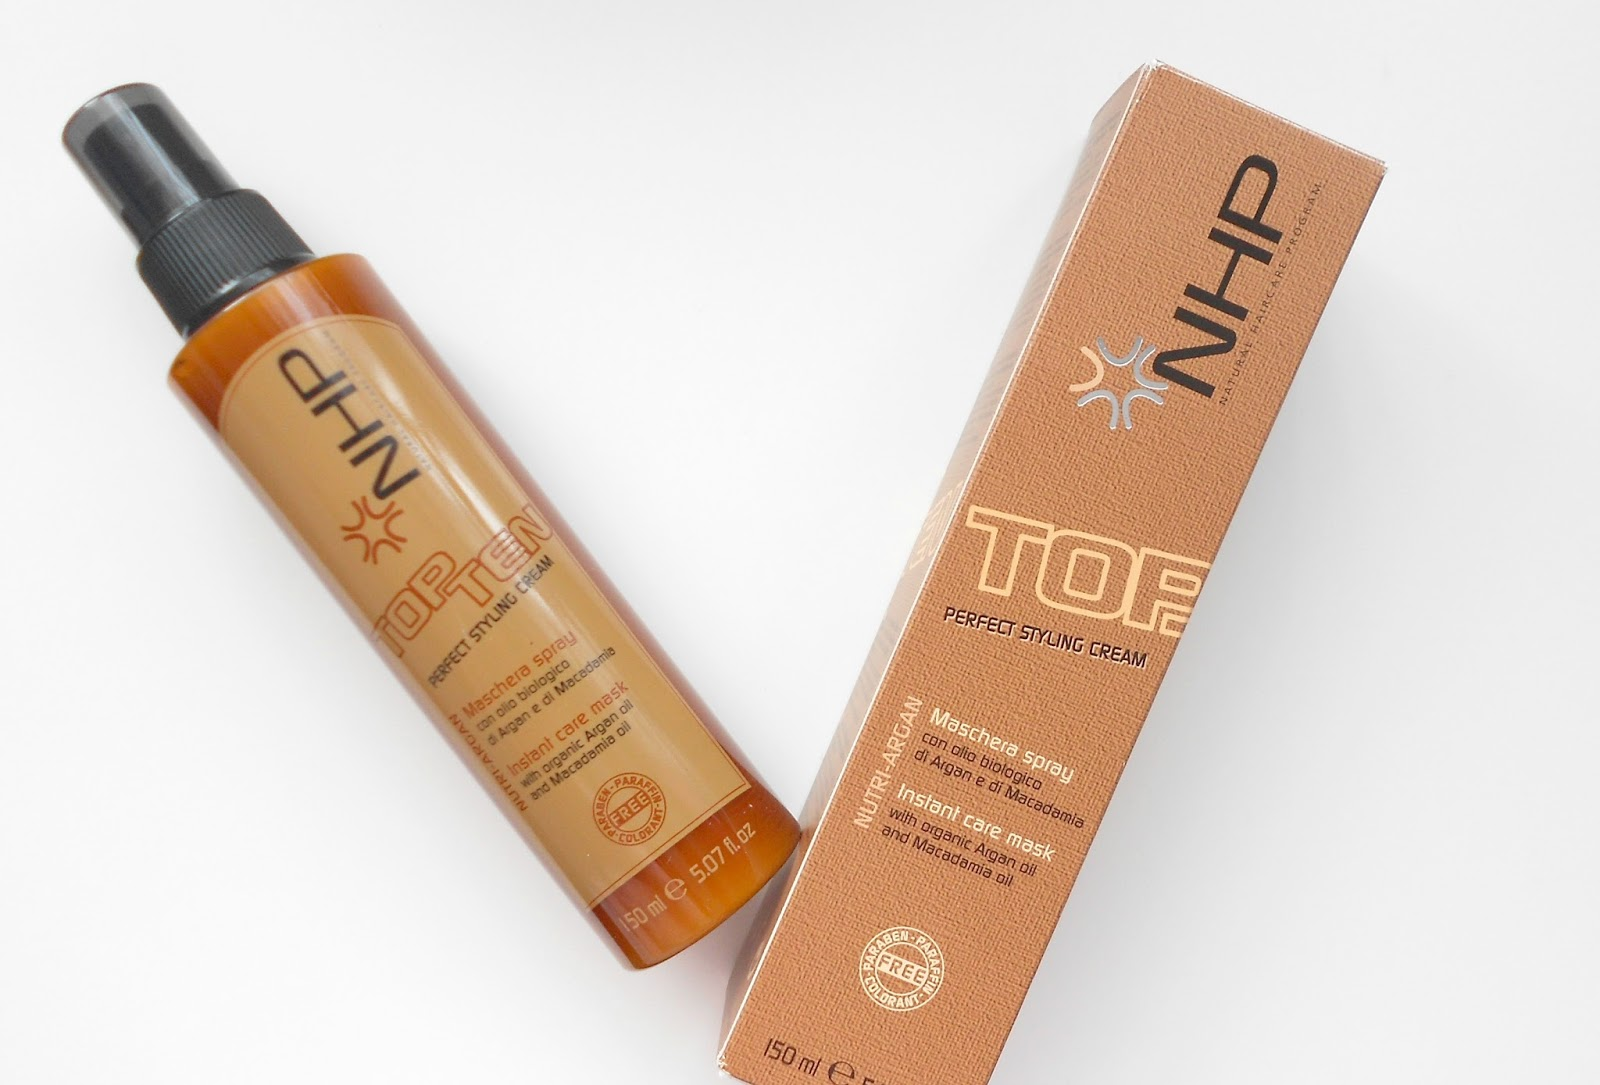 NHP TOP TEN PERFECT STYLING CREAM REVIEW ARGAN OIL MOROCCAN OIL DUPE